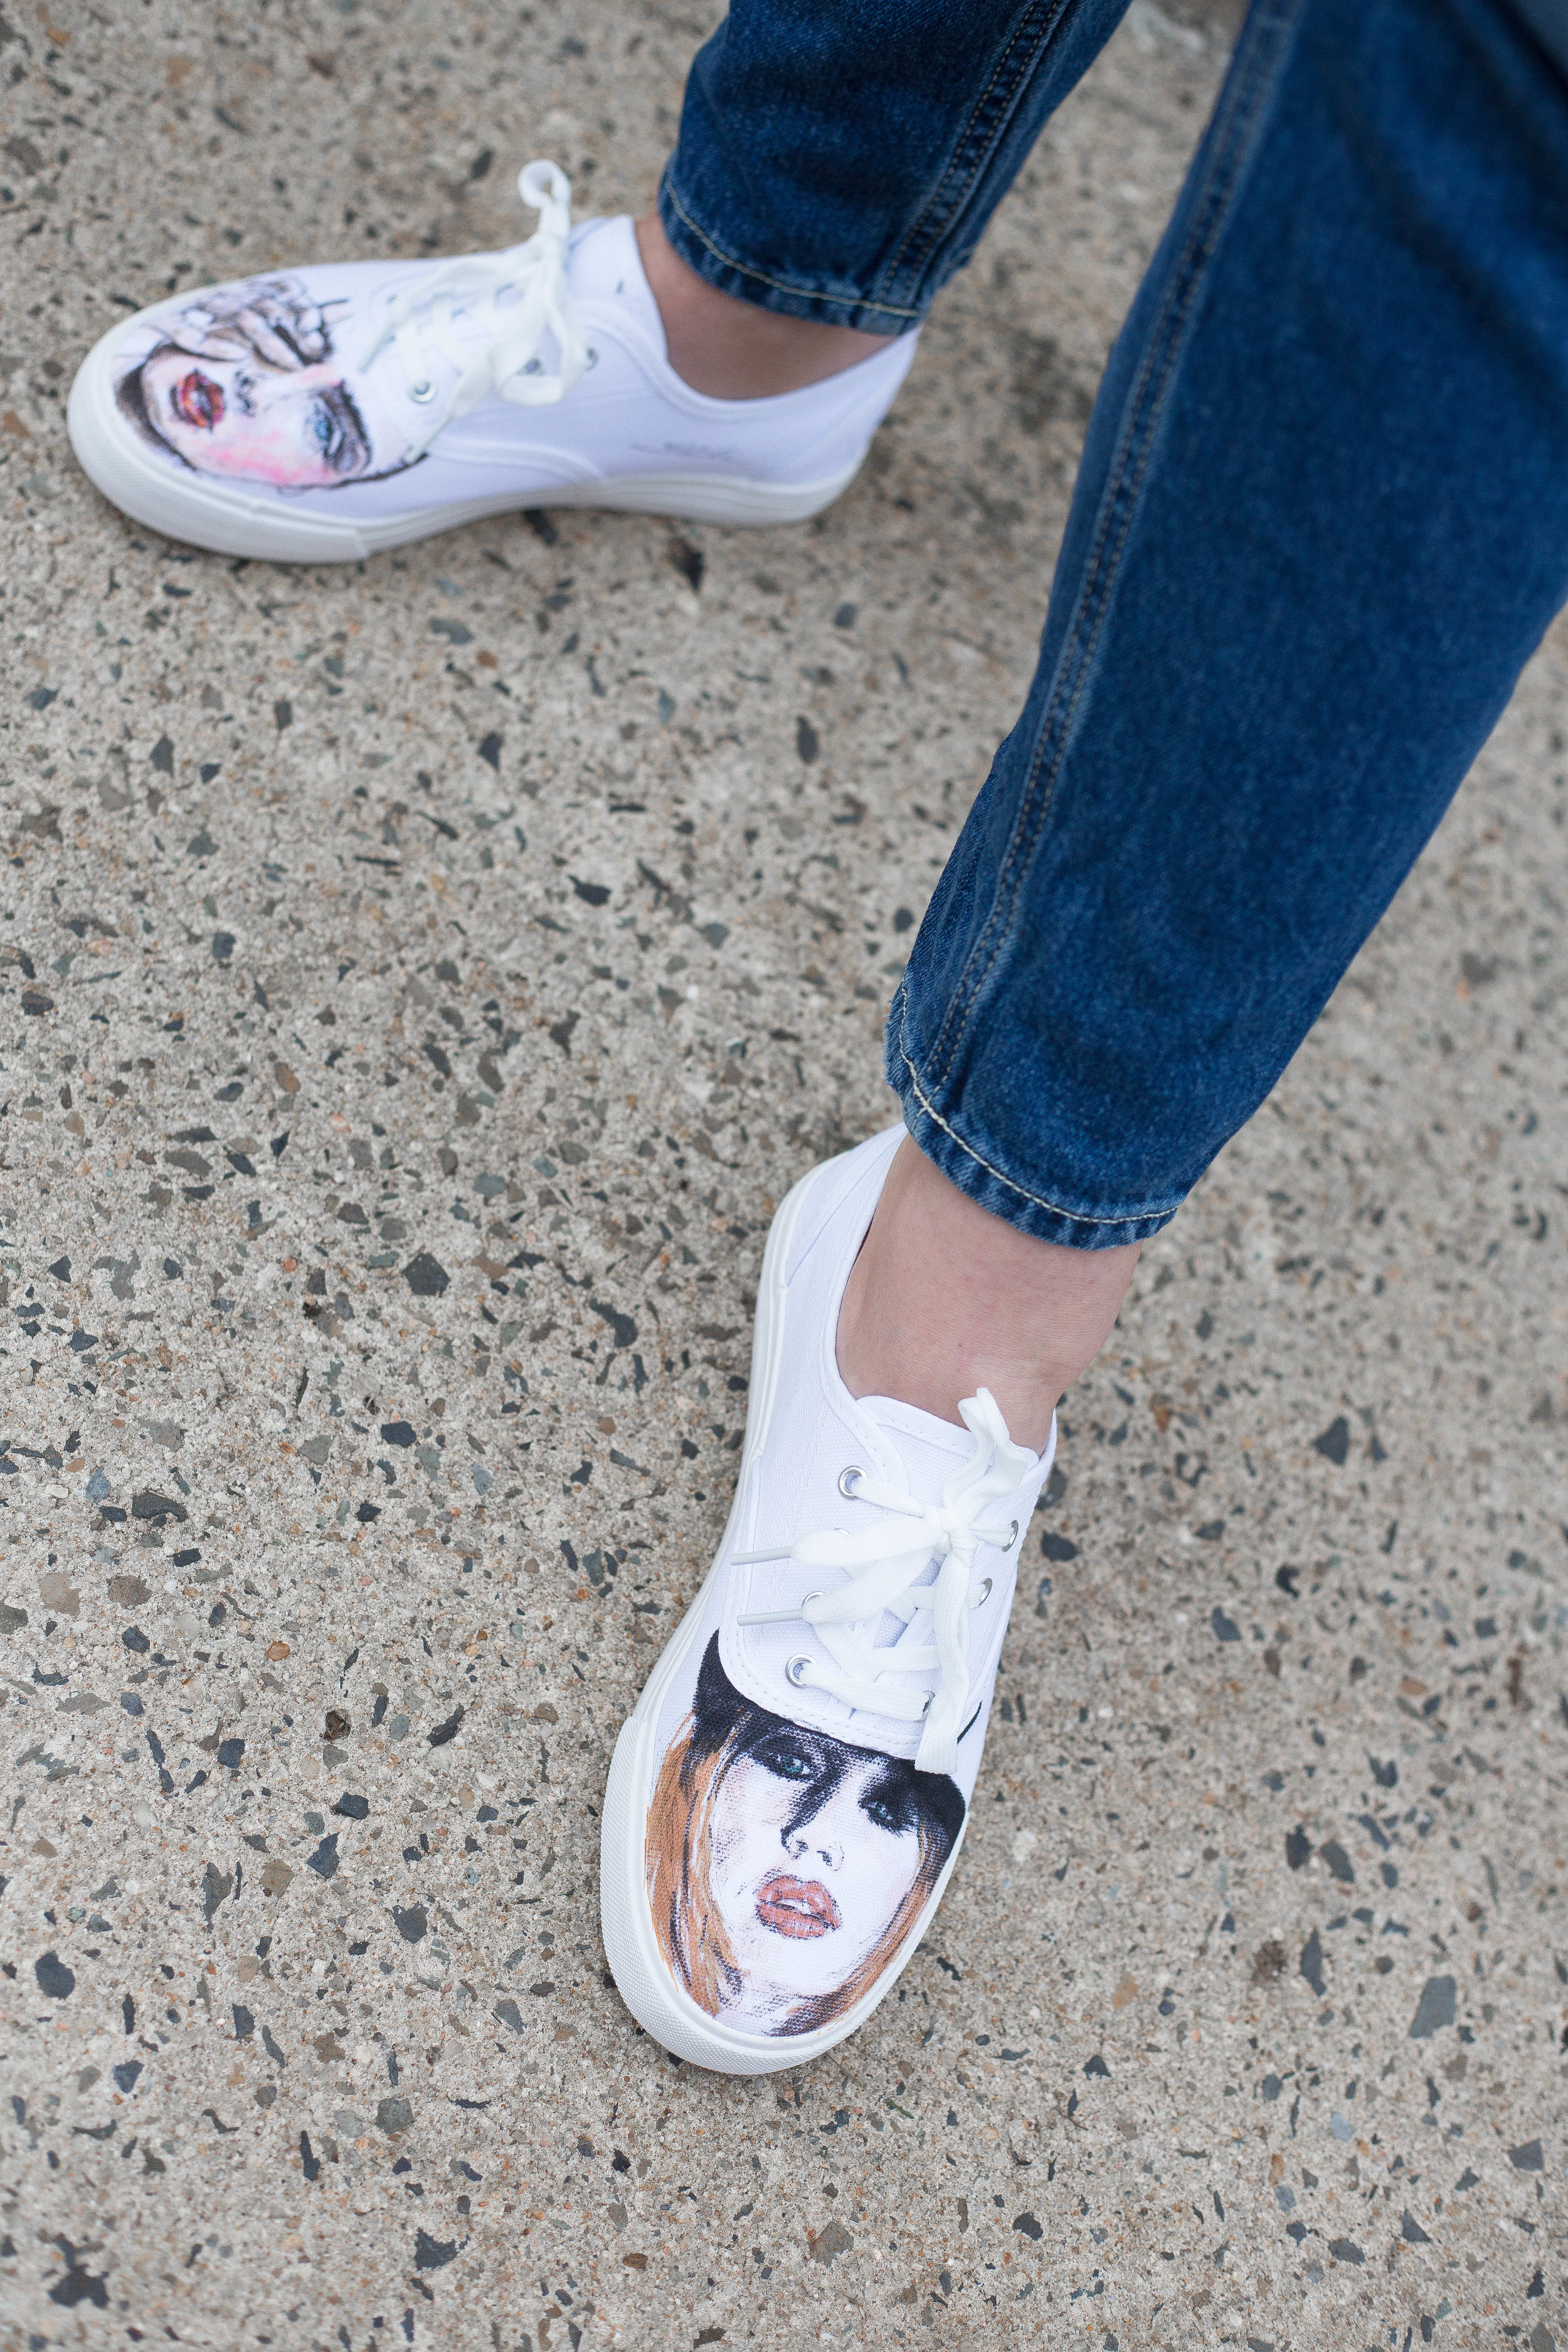 NEW SHOES (4 of 51).jpg